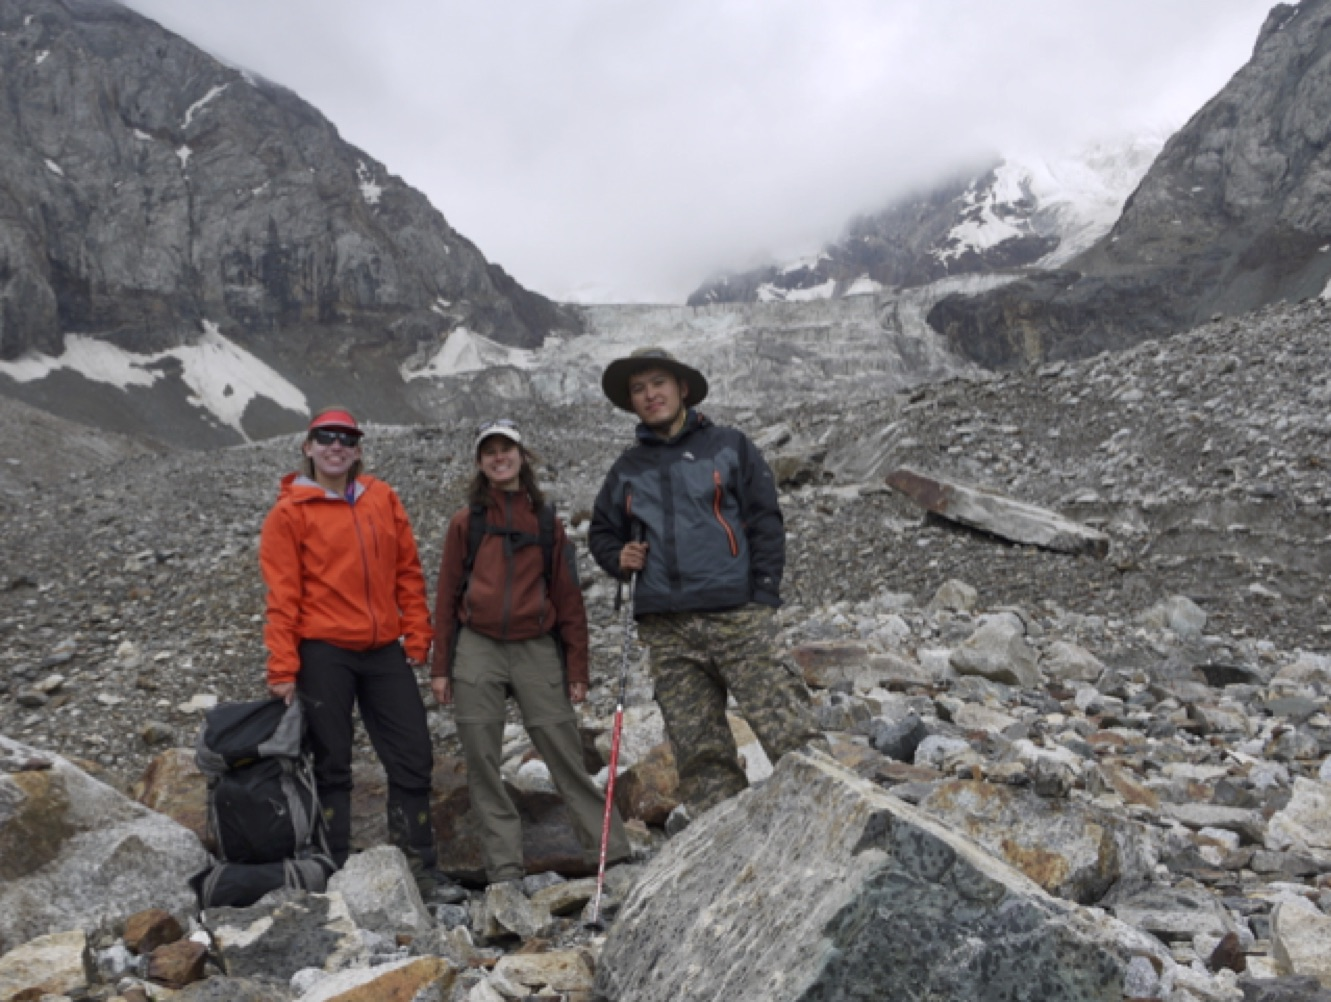 Alice Hill, Alana Wilson, and Muhammed Esenamanov (L to R) finish water sample collection at the Kara Batkak Glacier, Tien Shan Mountains, Kyrgyzstan